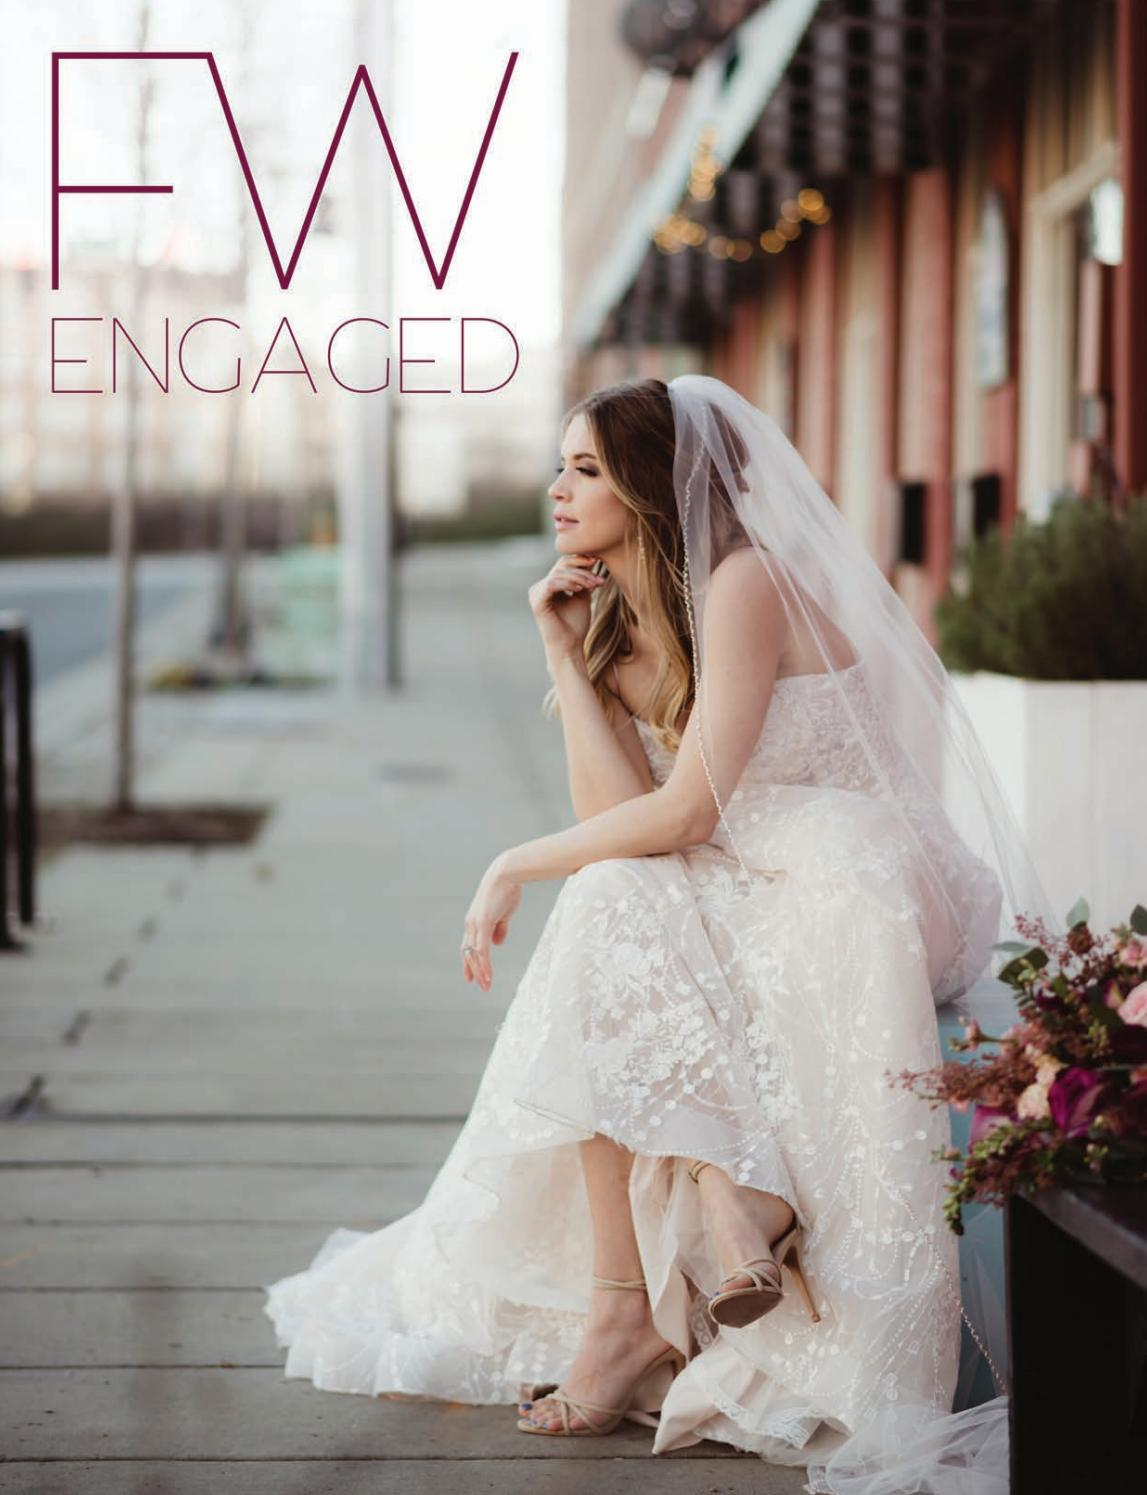 May 2019 Forsyth Woman Engaged By Forsyth Mags Issuu